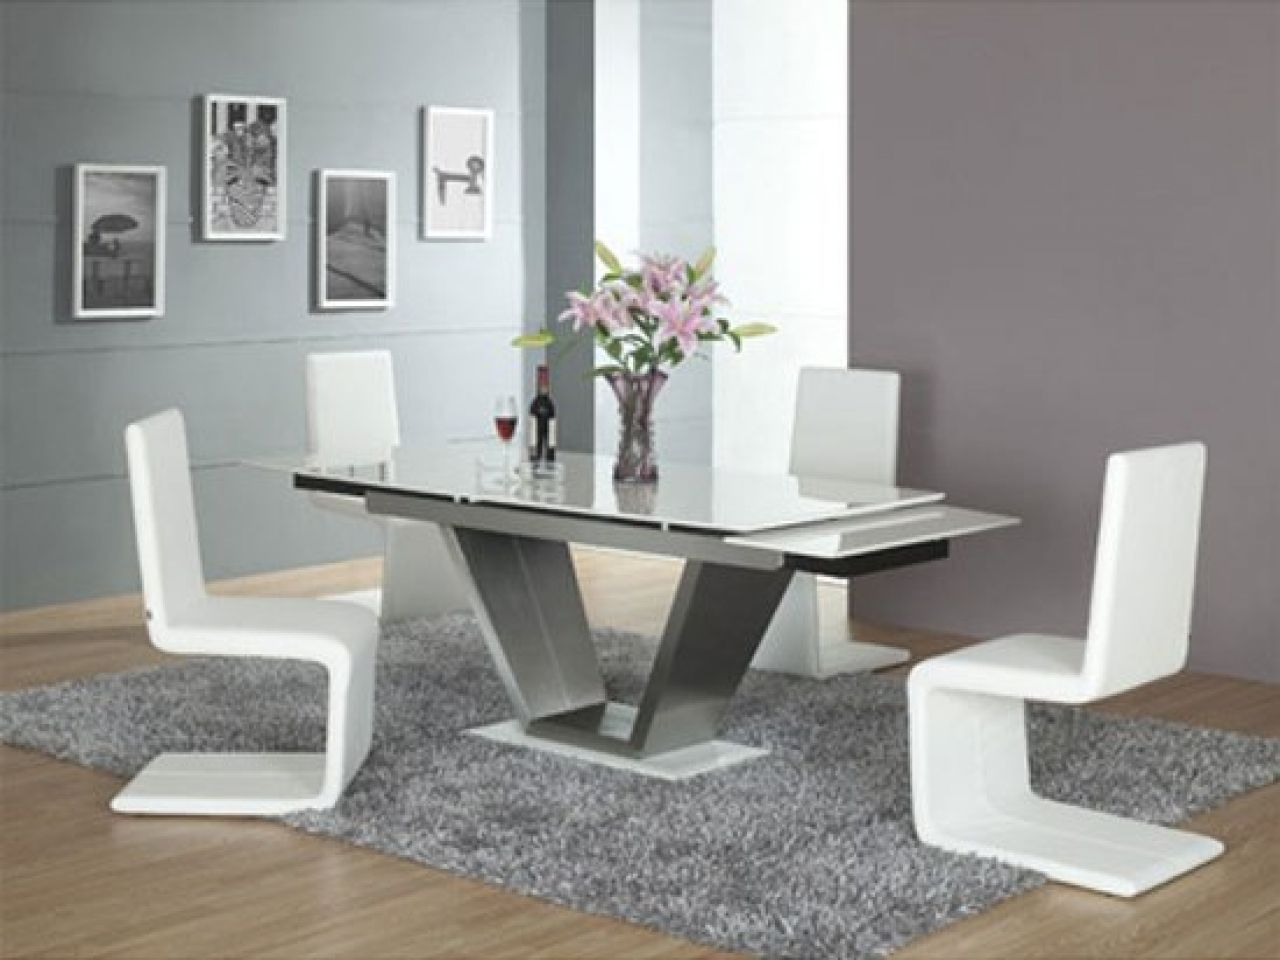 Tokyo White High Gloss Extending Dining Table And 6 Chairs Set Perth Grey